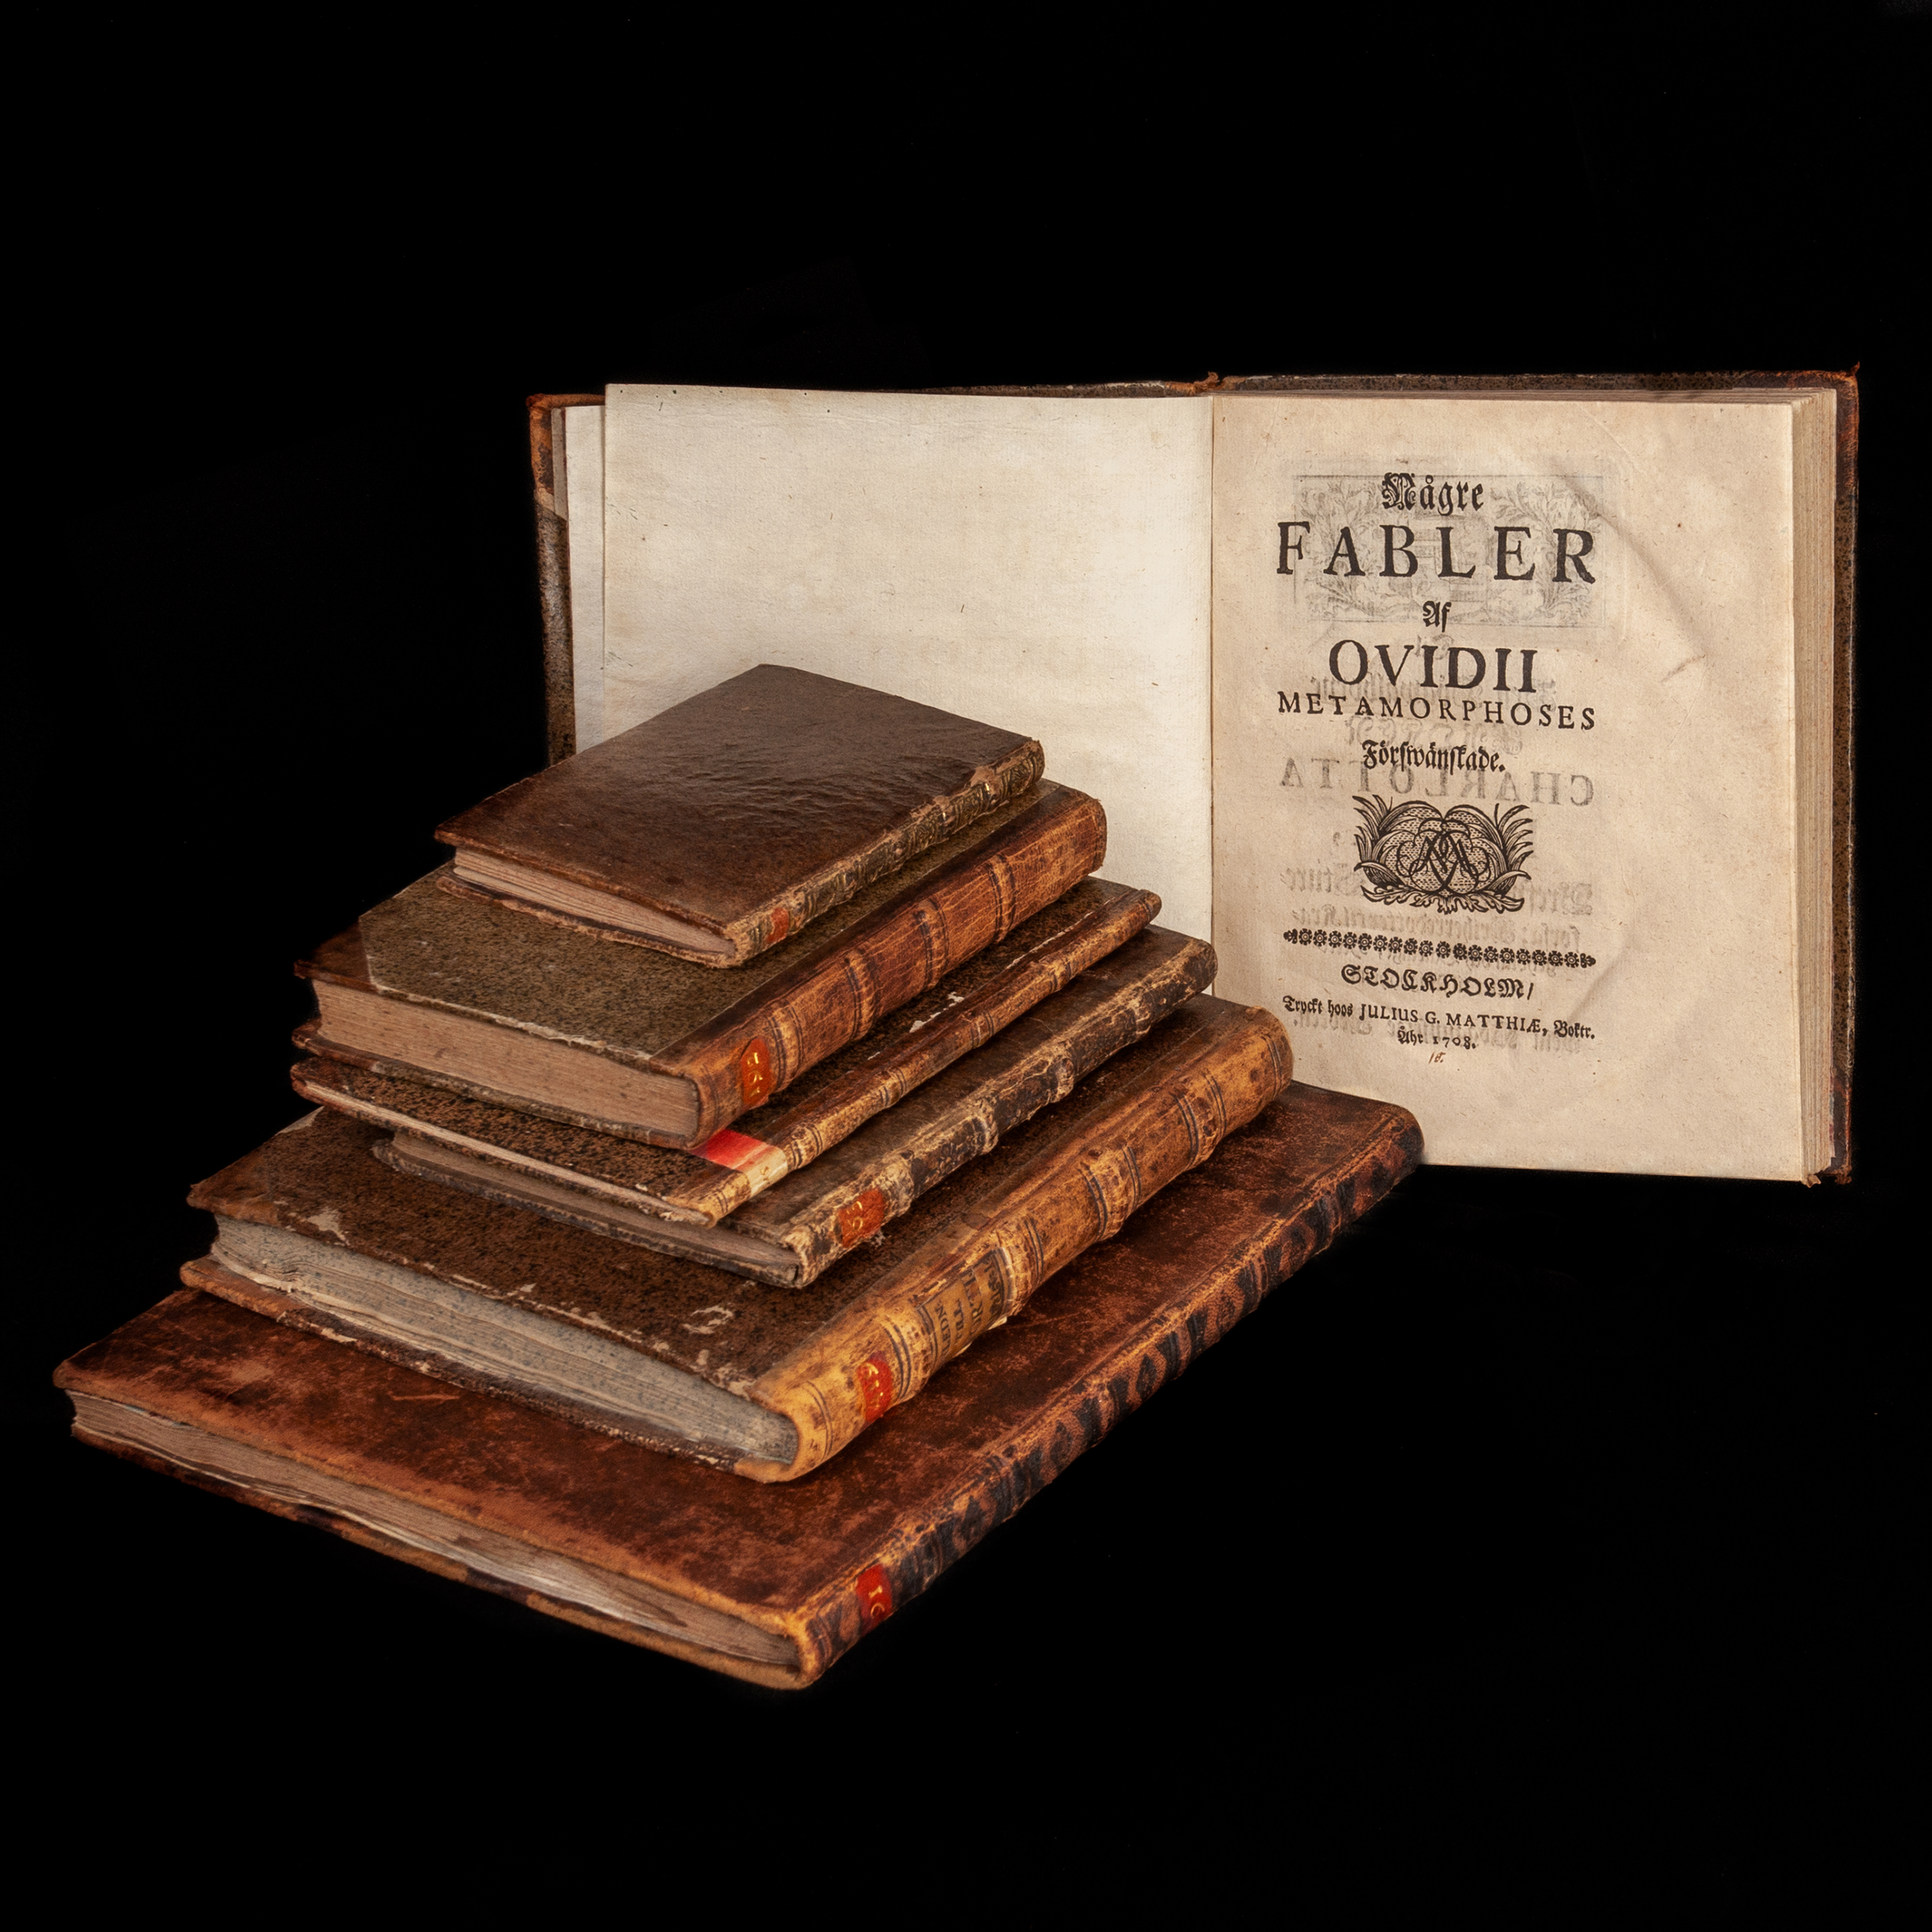 a pile of brown leather halfbindings with sprinkled paper on the covers